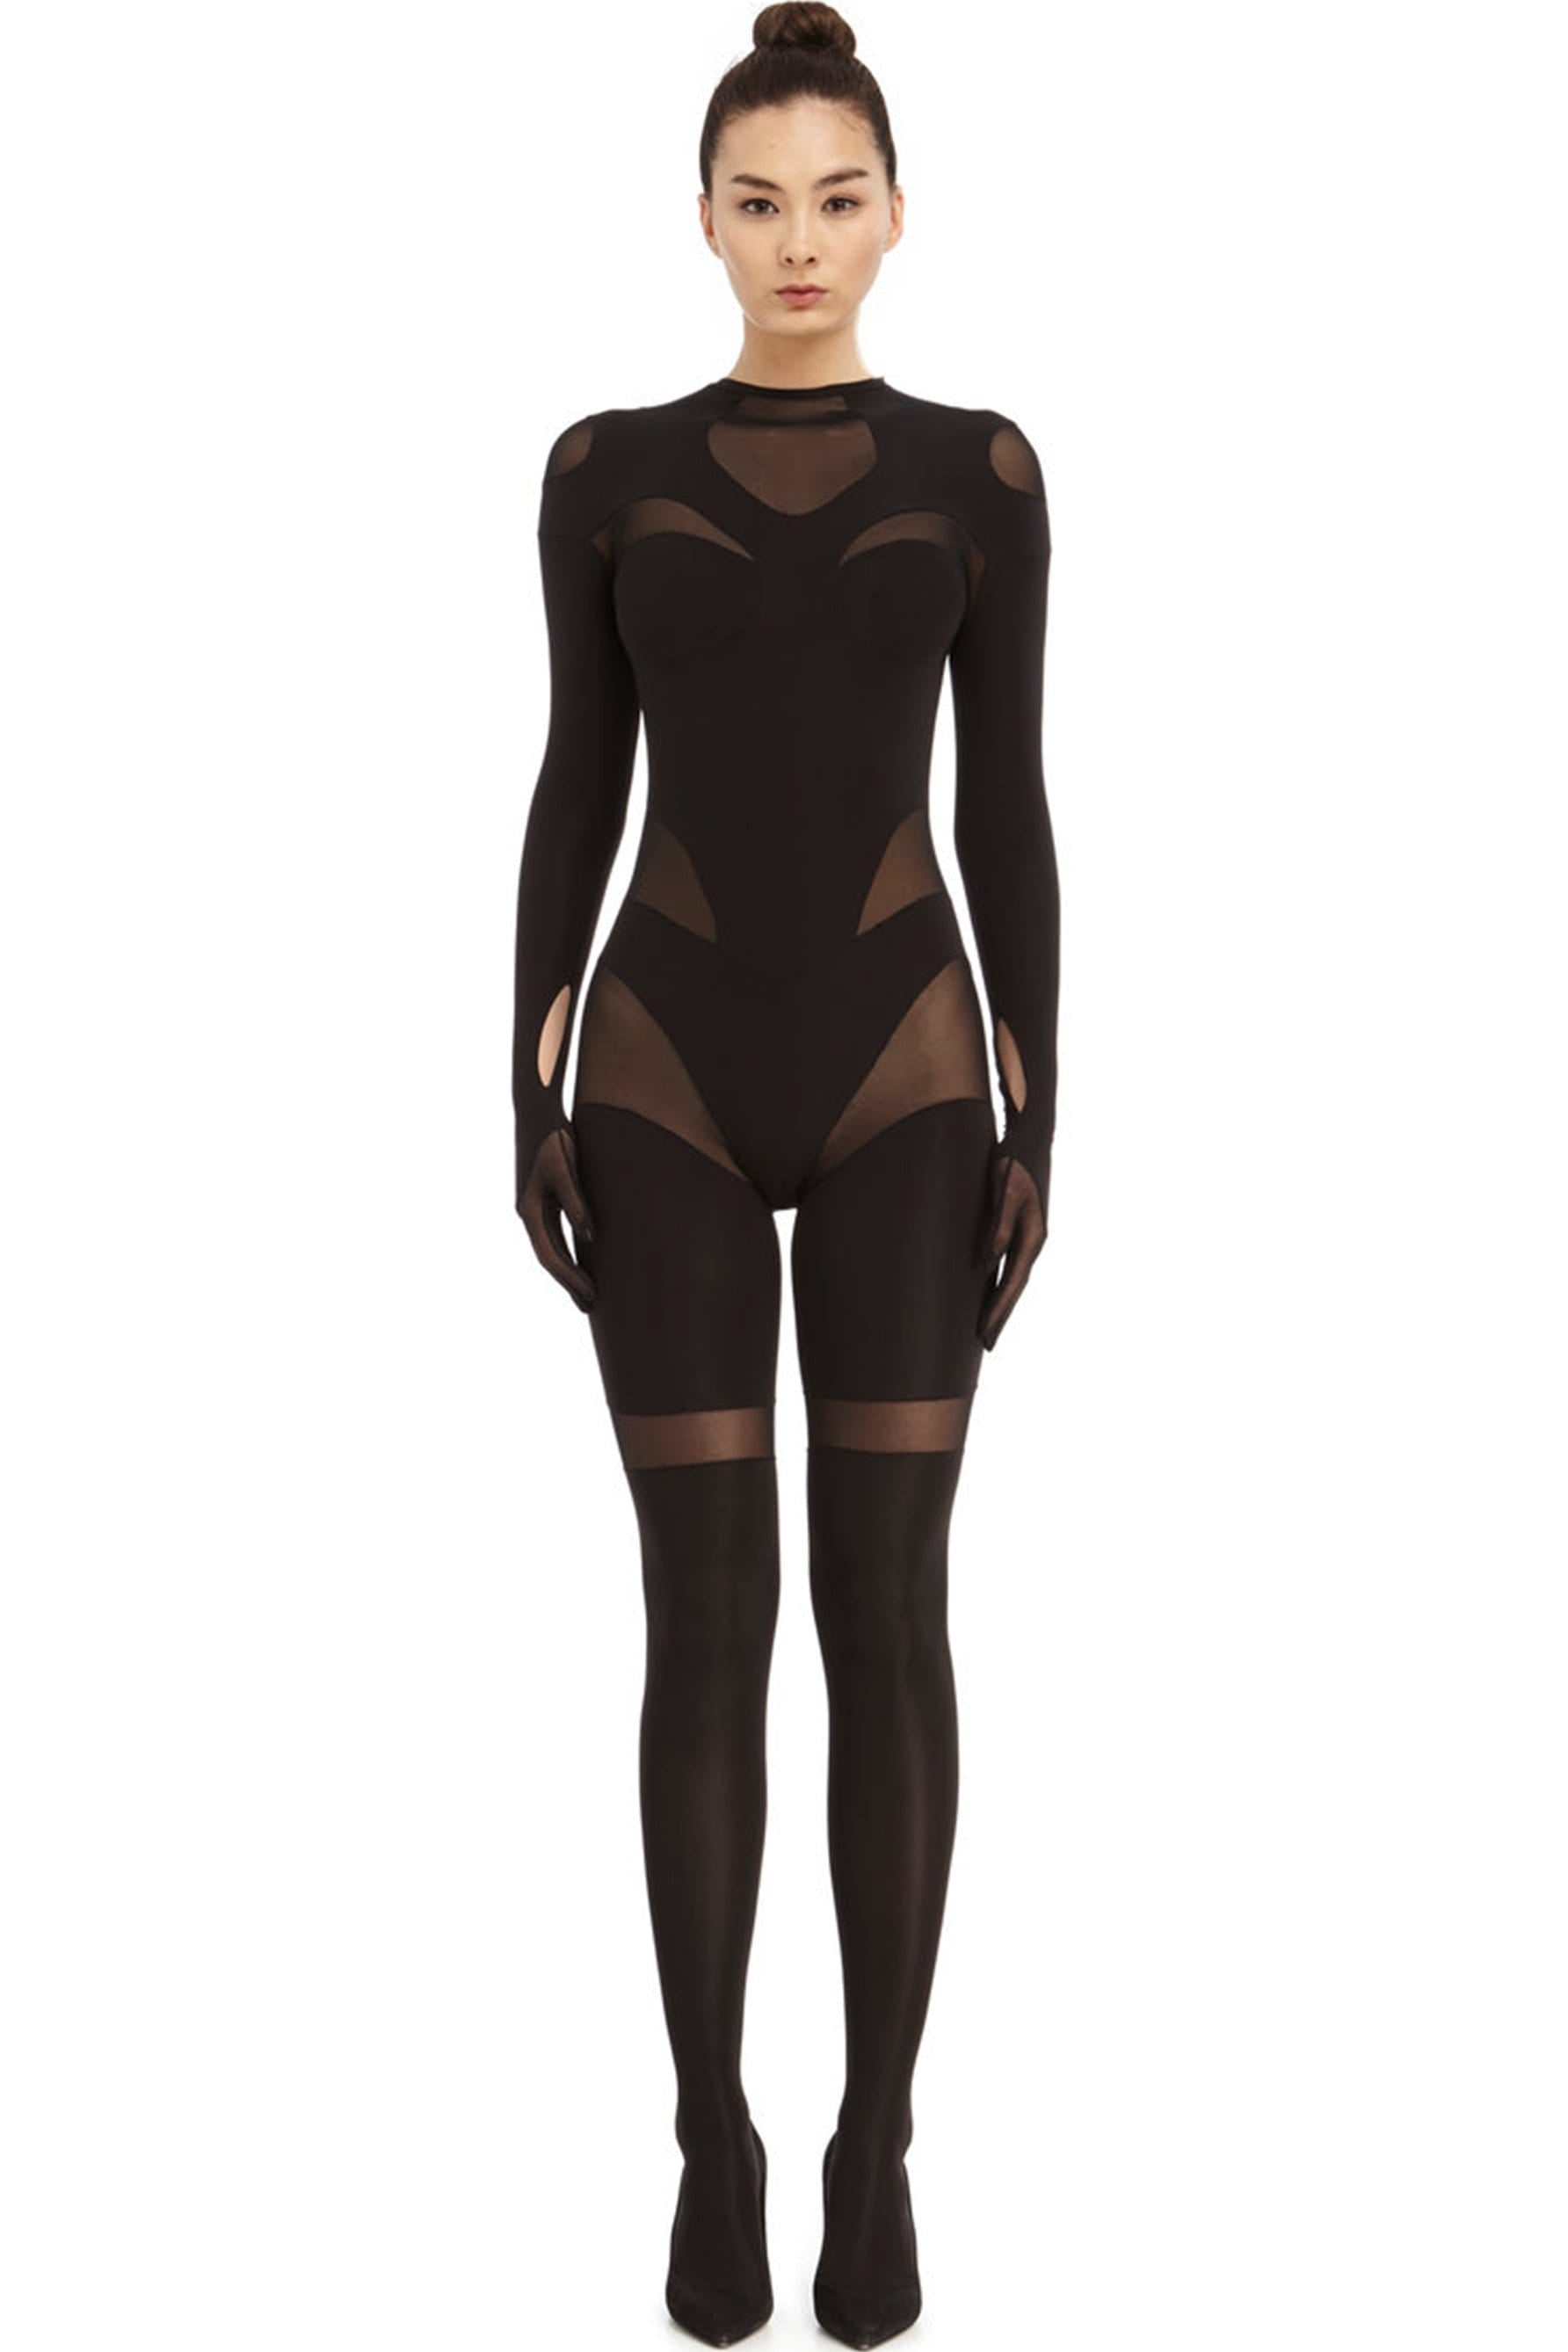 DSTM Solta low back catsuit with hands and footies sheer